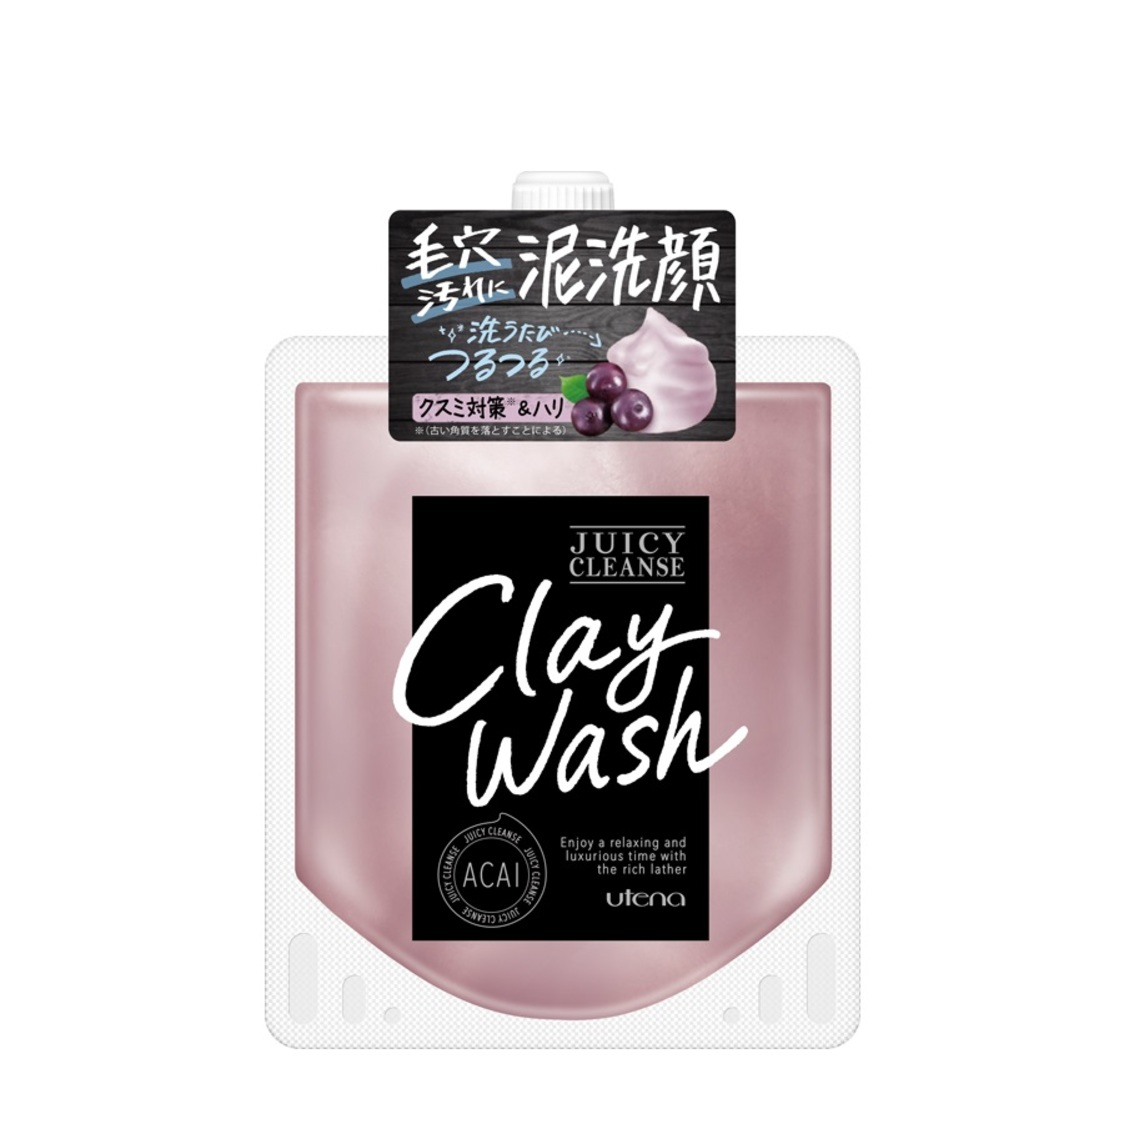 Juicy Cleanse Facial Wash Acai 110g